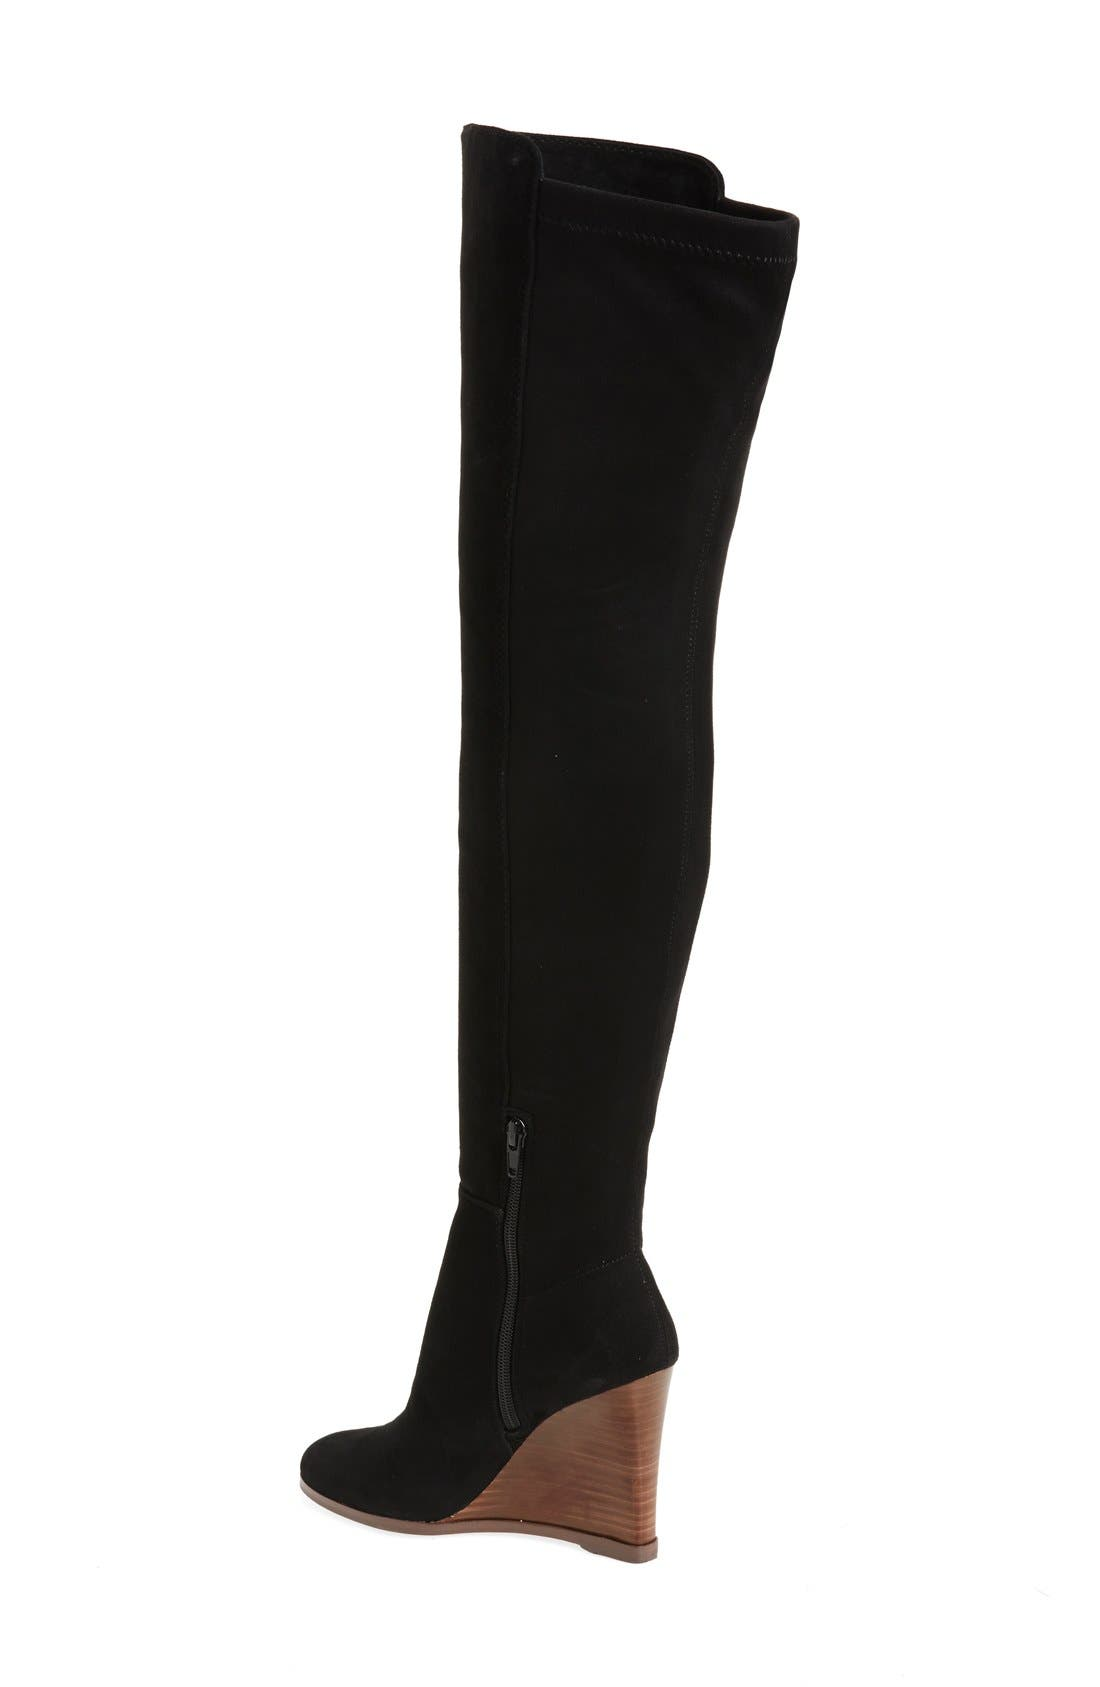 Alternate Image 2  - Vince Camuto 'Granta' Over the Knee Wedge Boot (Women)